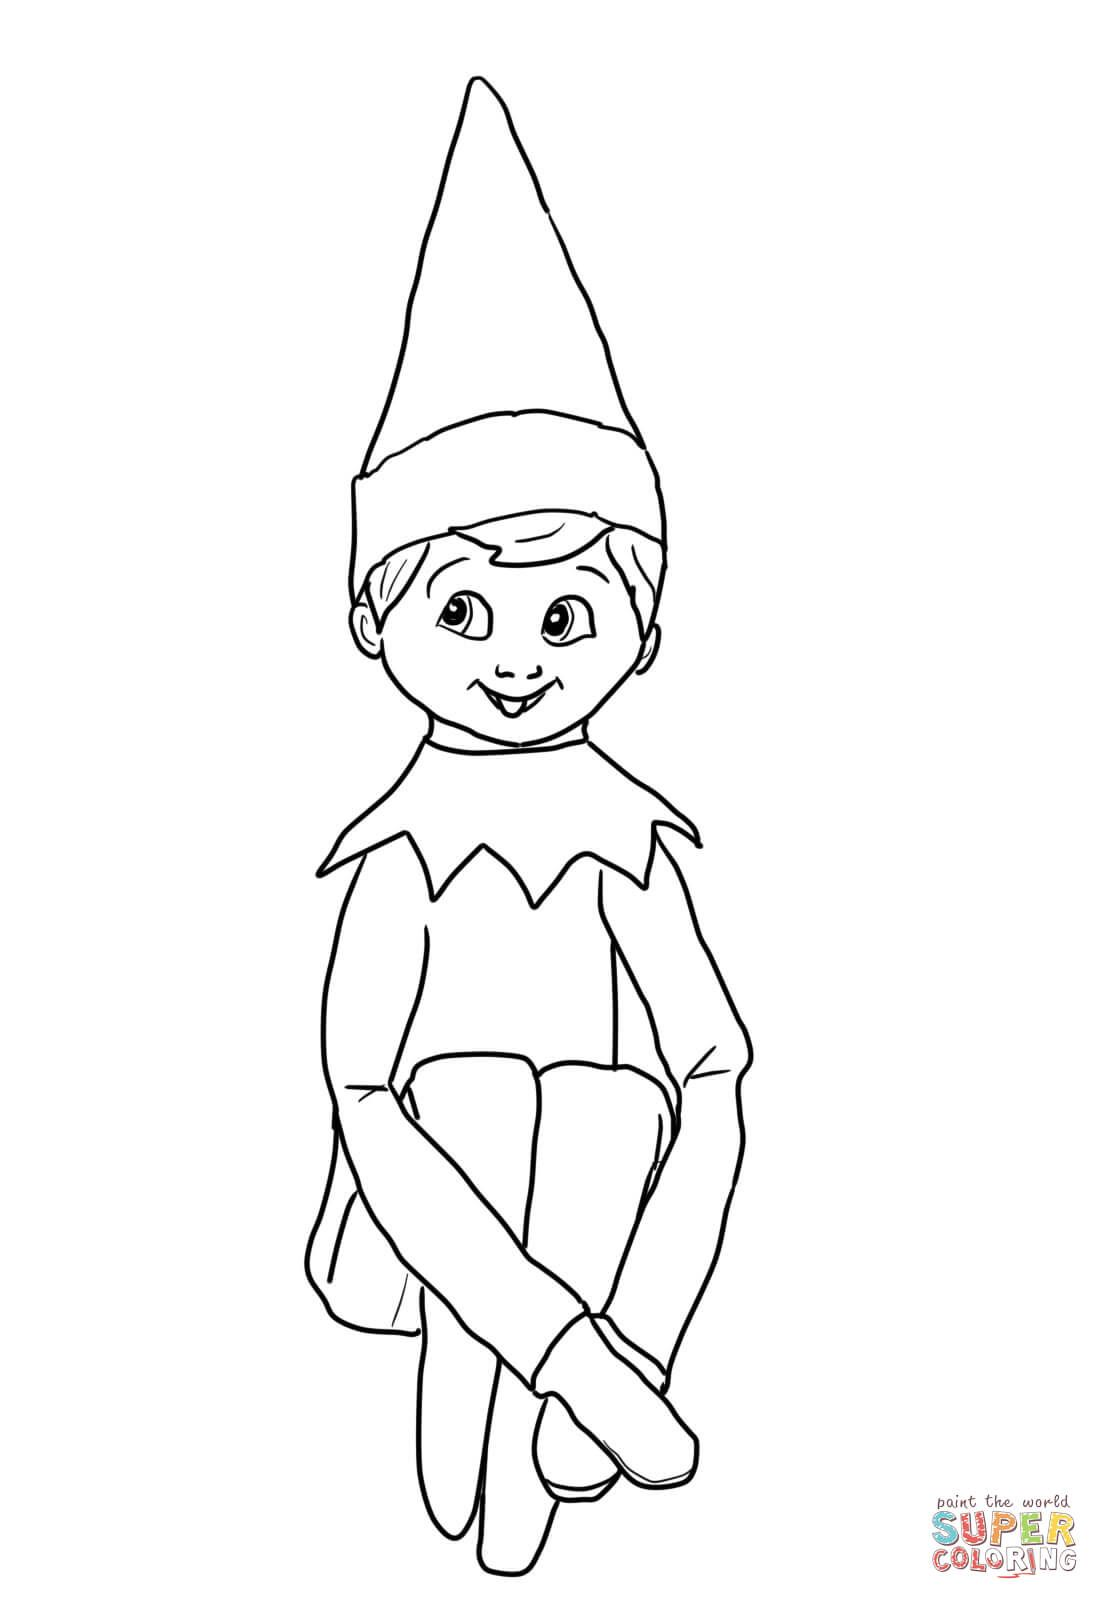 christmas elf on shelf coloring page from elf on the shelf category select from 28148 printable crafts of cartoons nature animals bible and many more